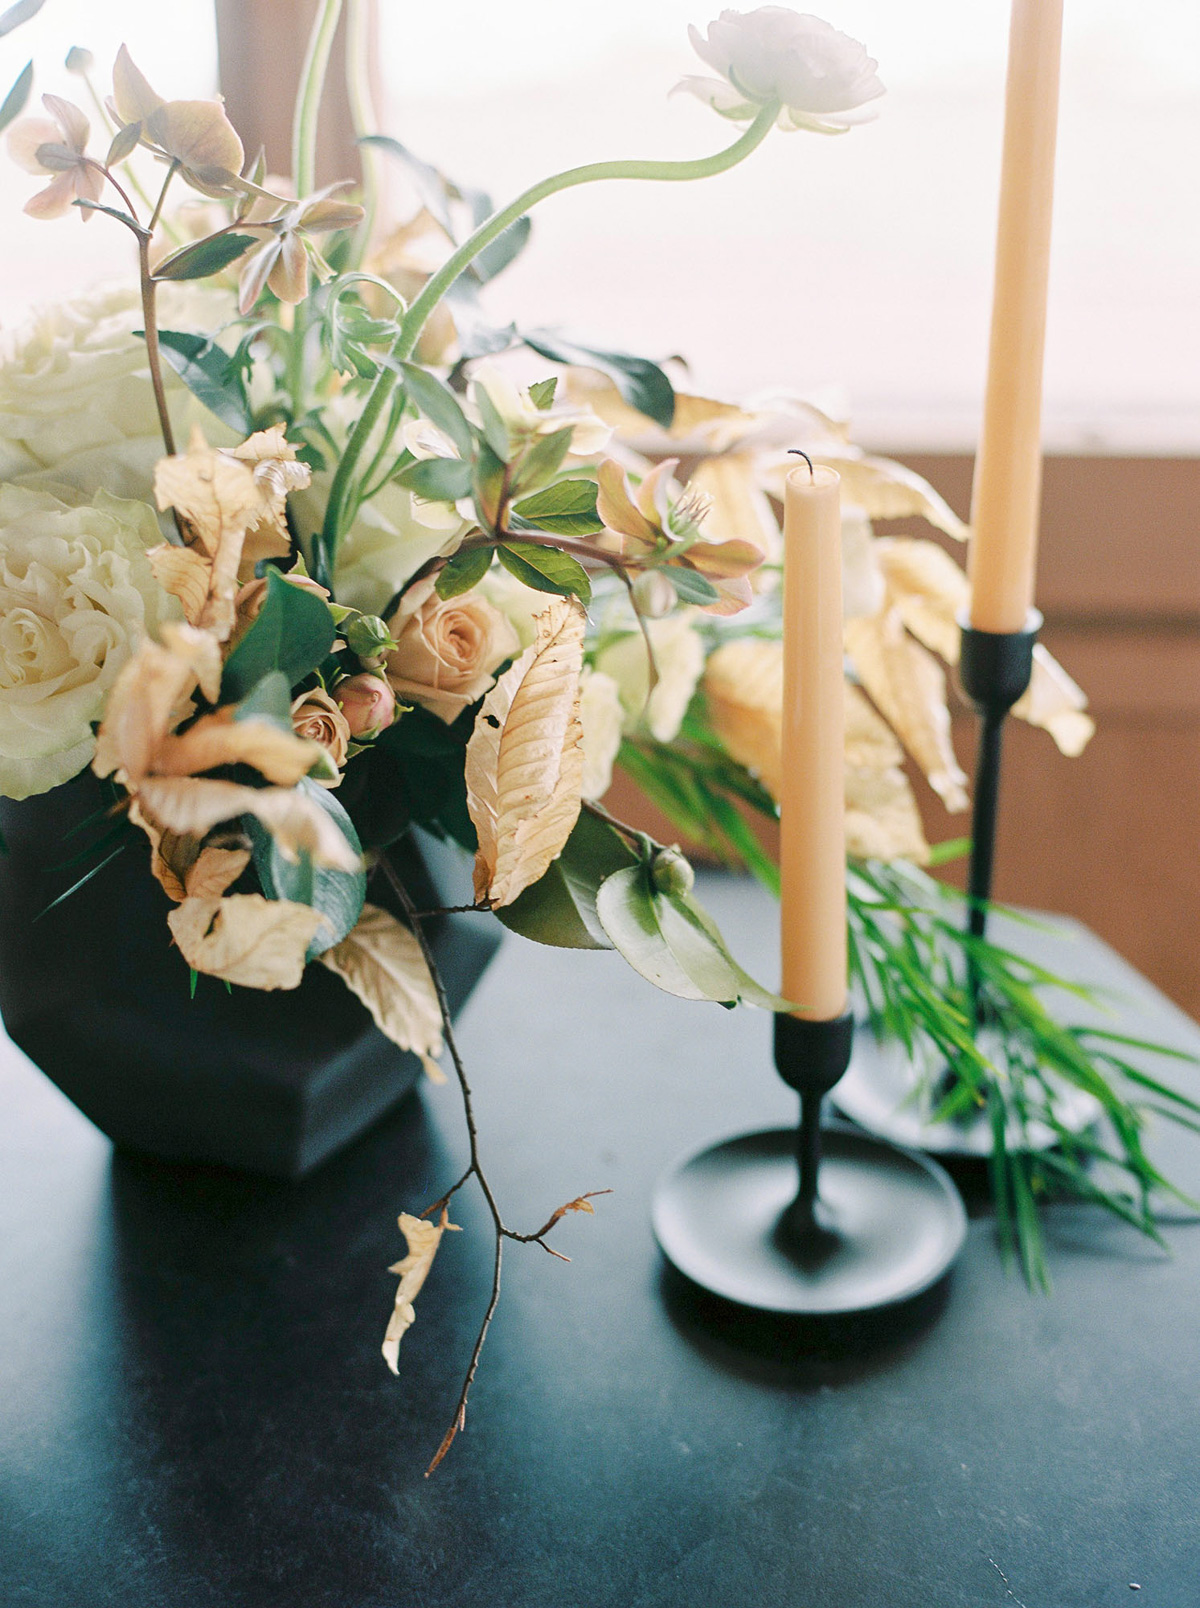 will-reid-photo-vineyard-bride-swish-list-kurtz-orchards-market-niagara-on-the-lake-wedding-editorial-35.jpg